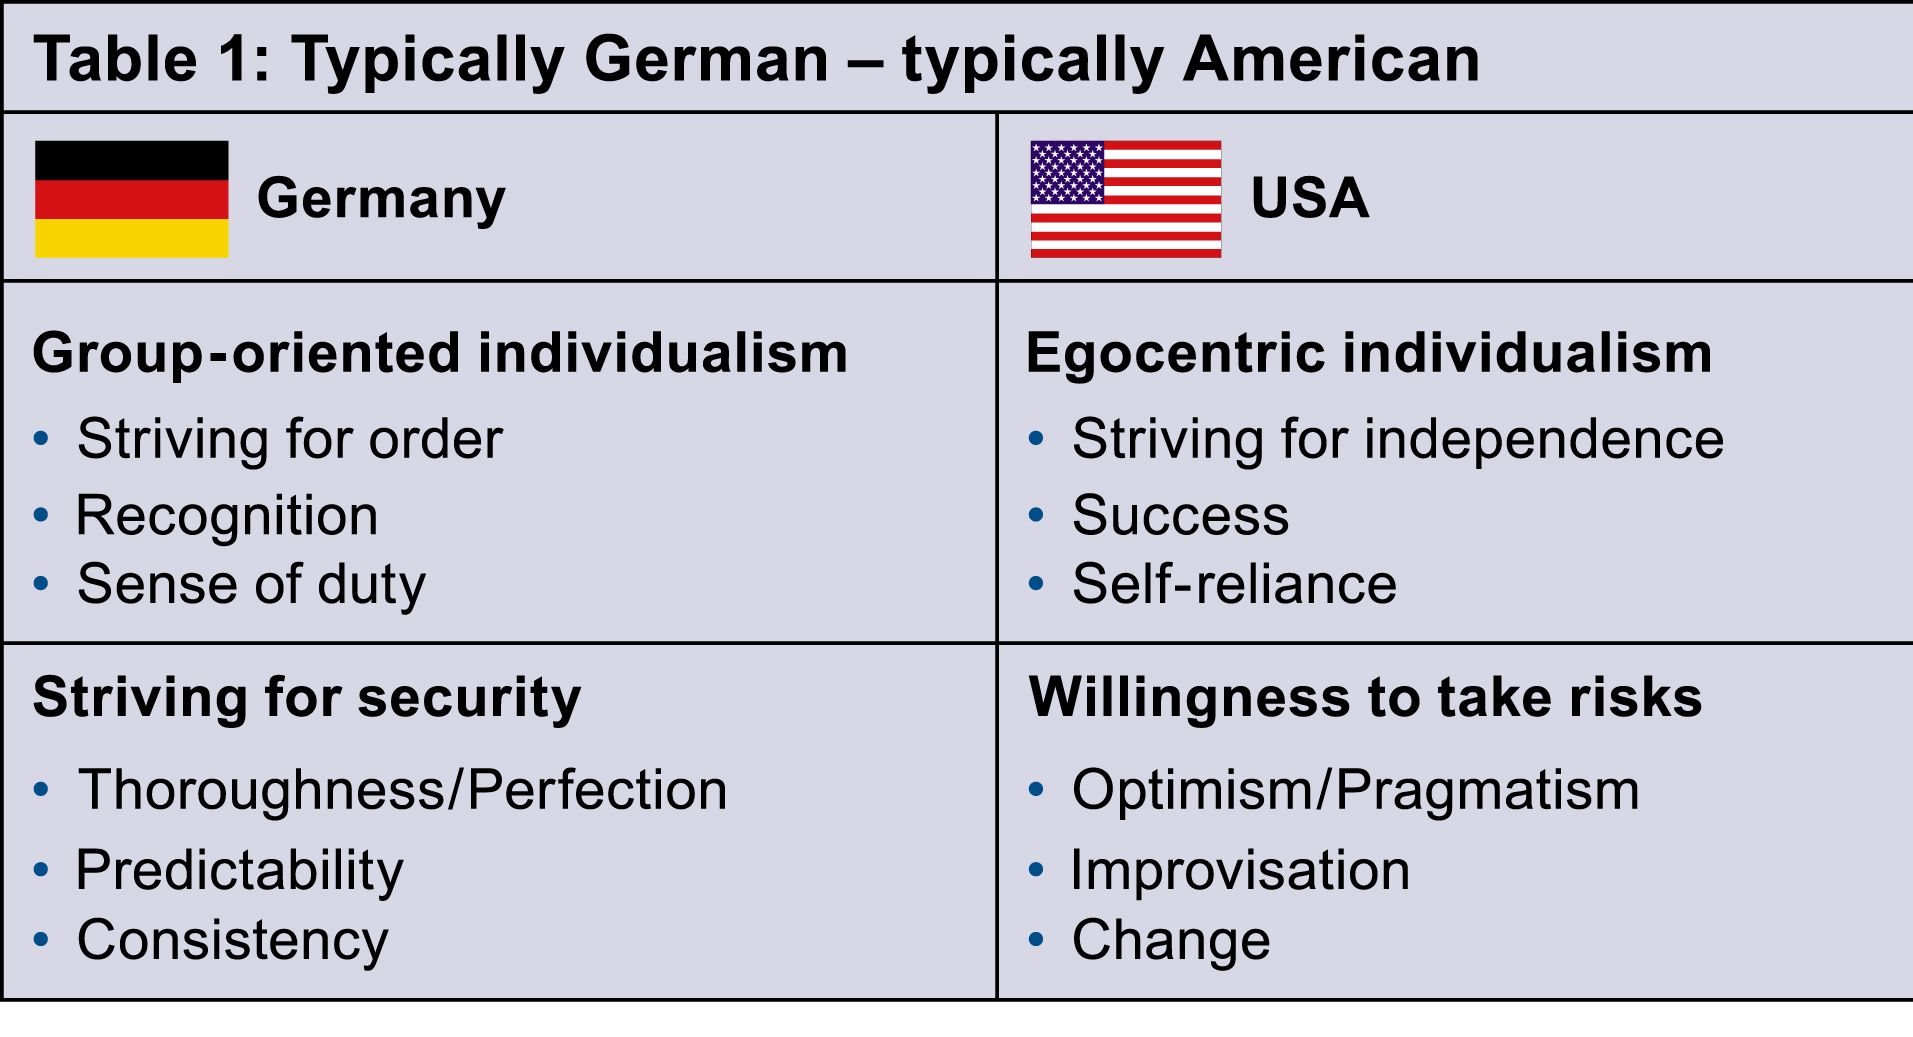 cultural comparison russia and us United states and russia compared side by side various facts, figures, measures and indicators are listed allowing similarities and differences to quickly be examined.